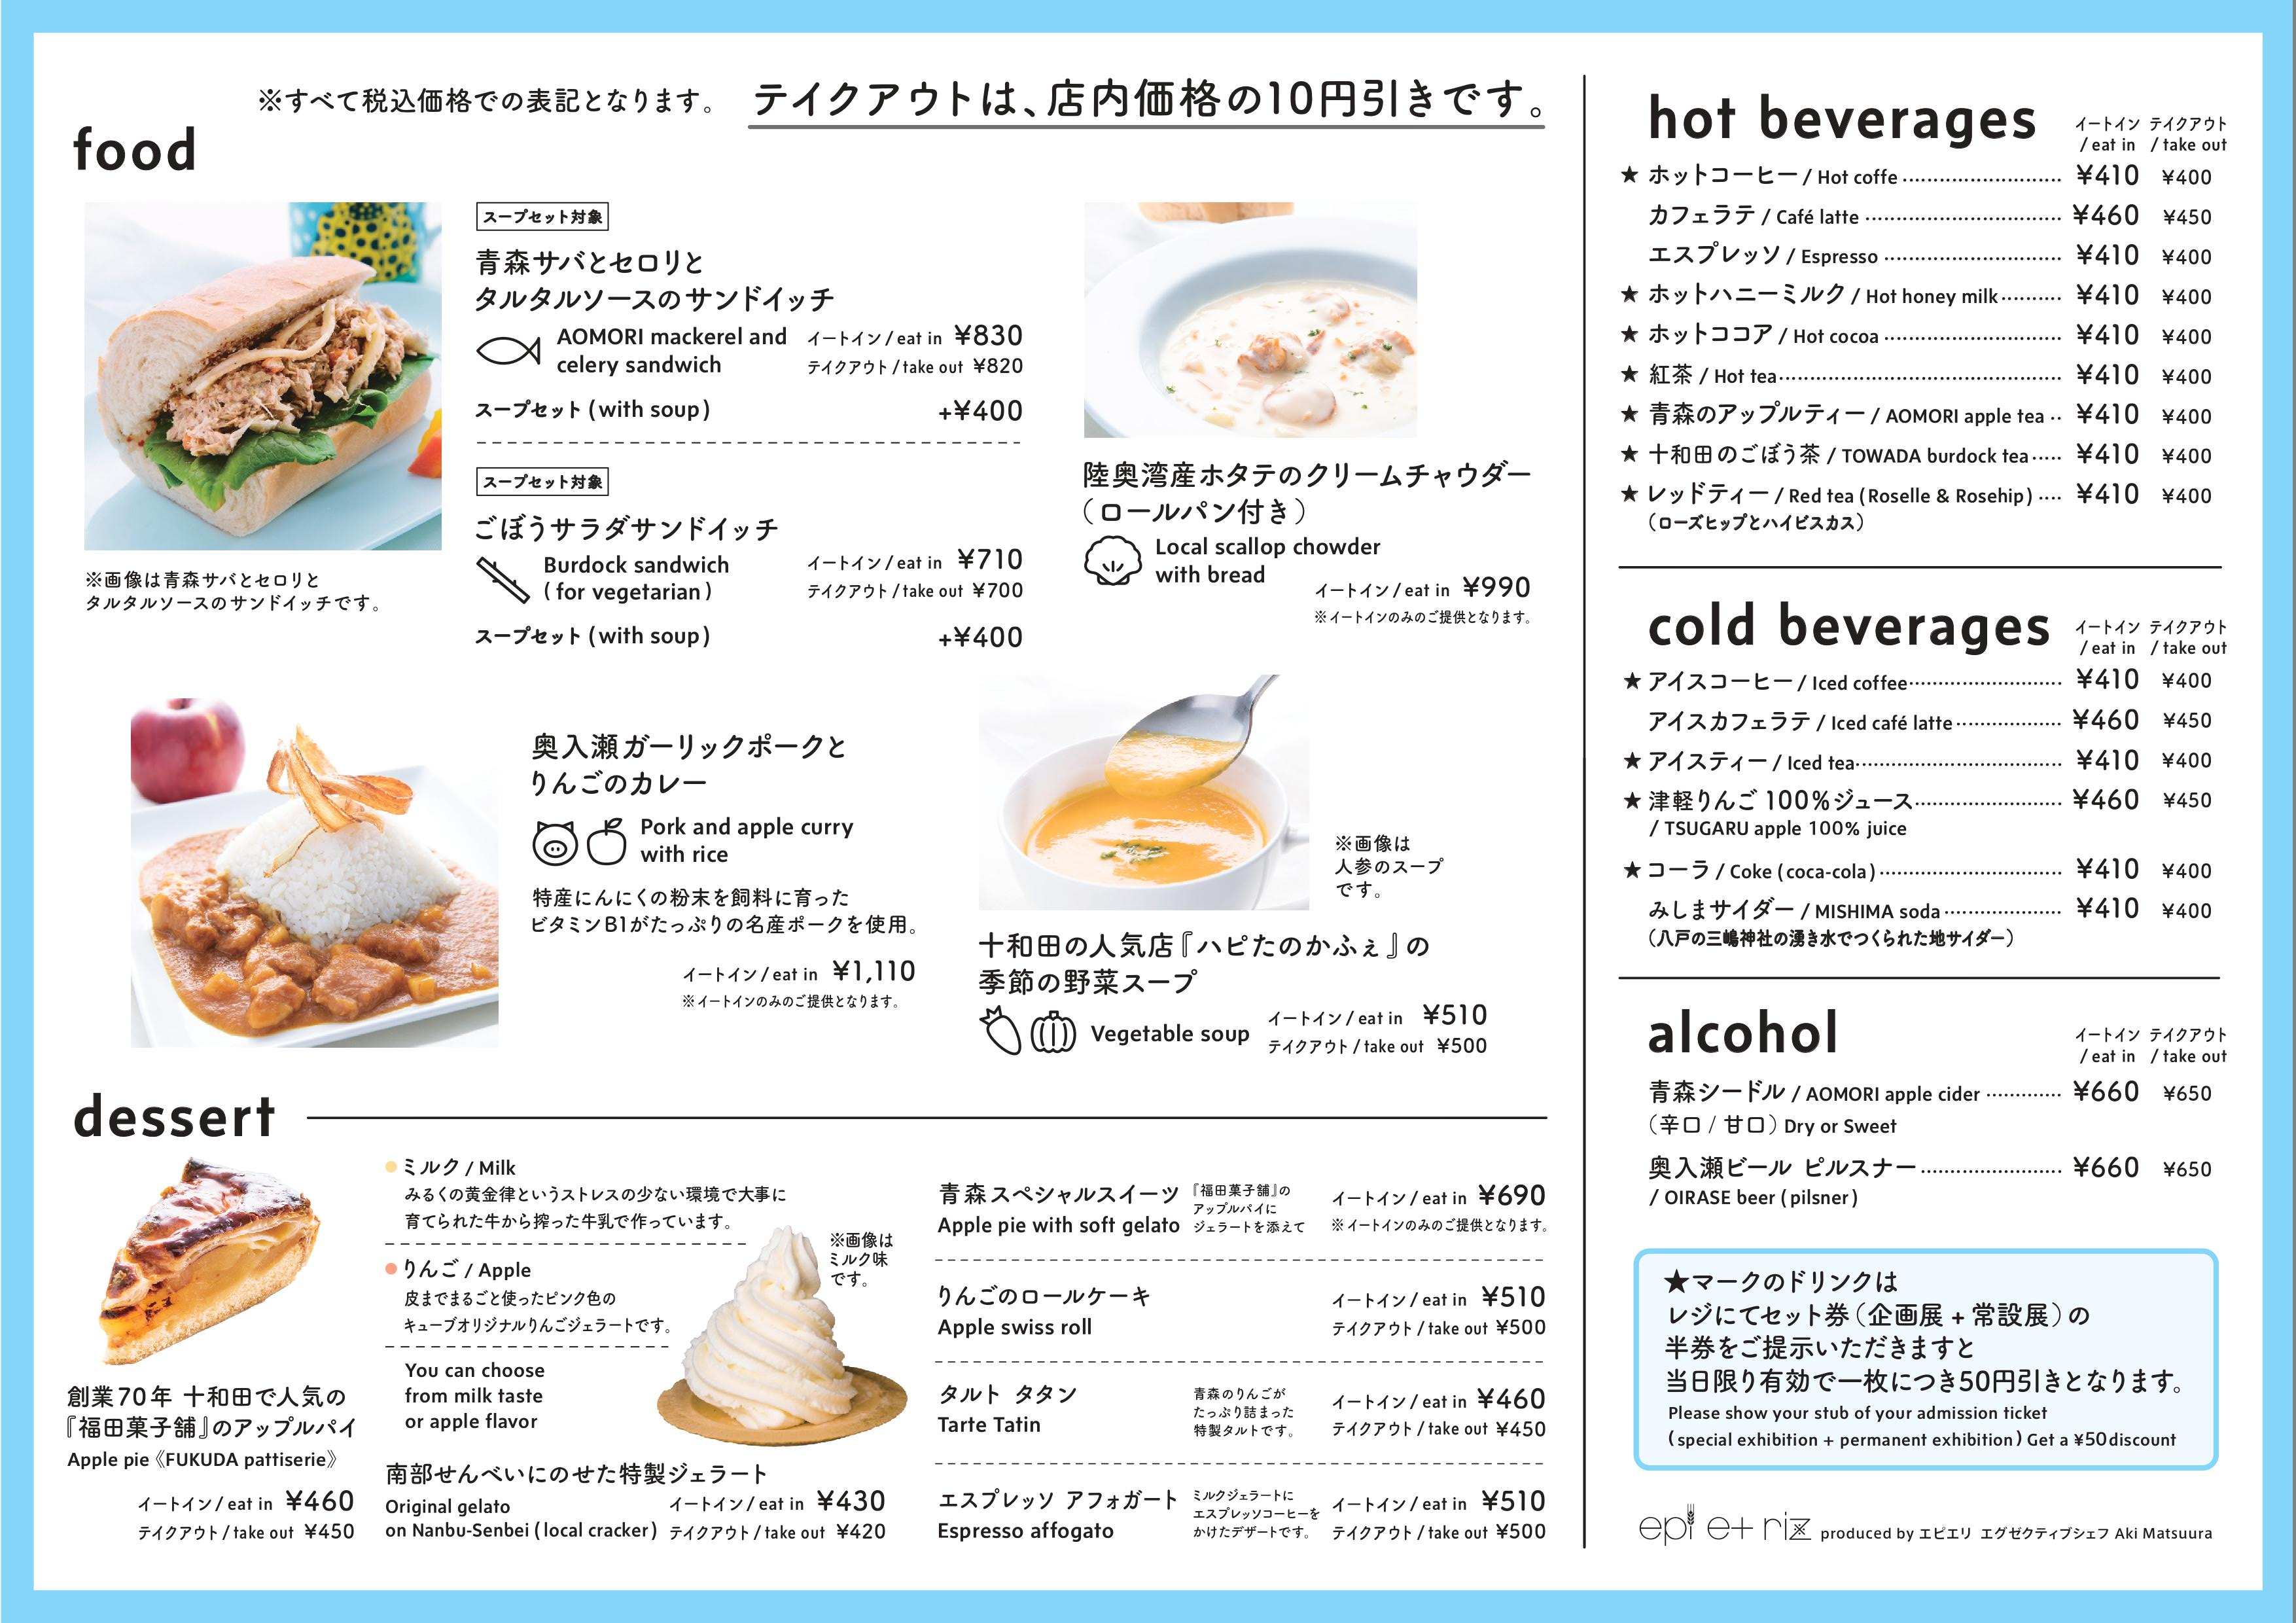 cube cafe menu 2019 autumn